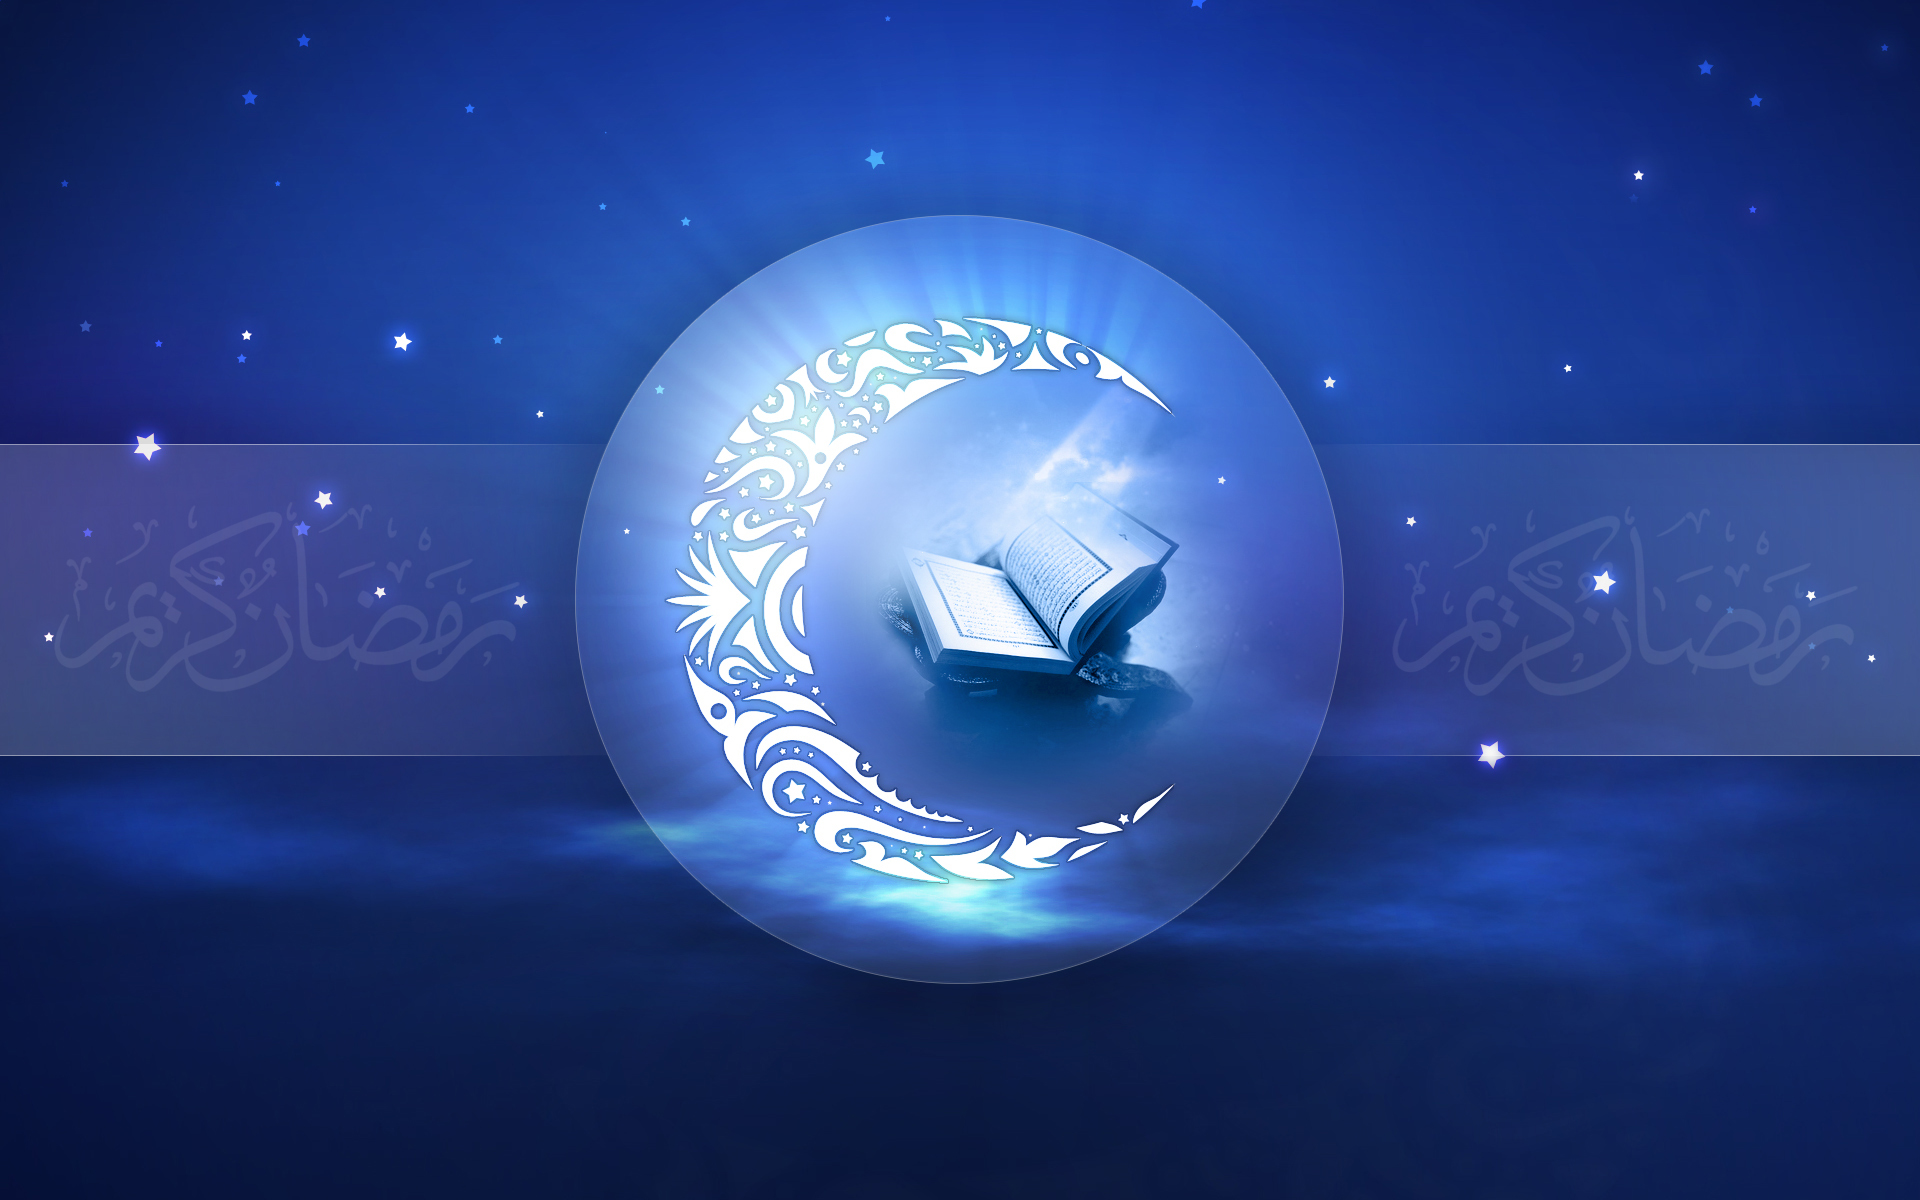 Beautiful Ramadan Desktop Wallpapers Hongkiat 1920x1200